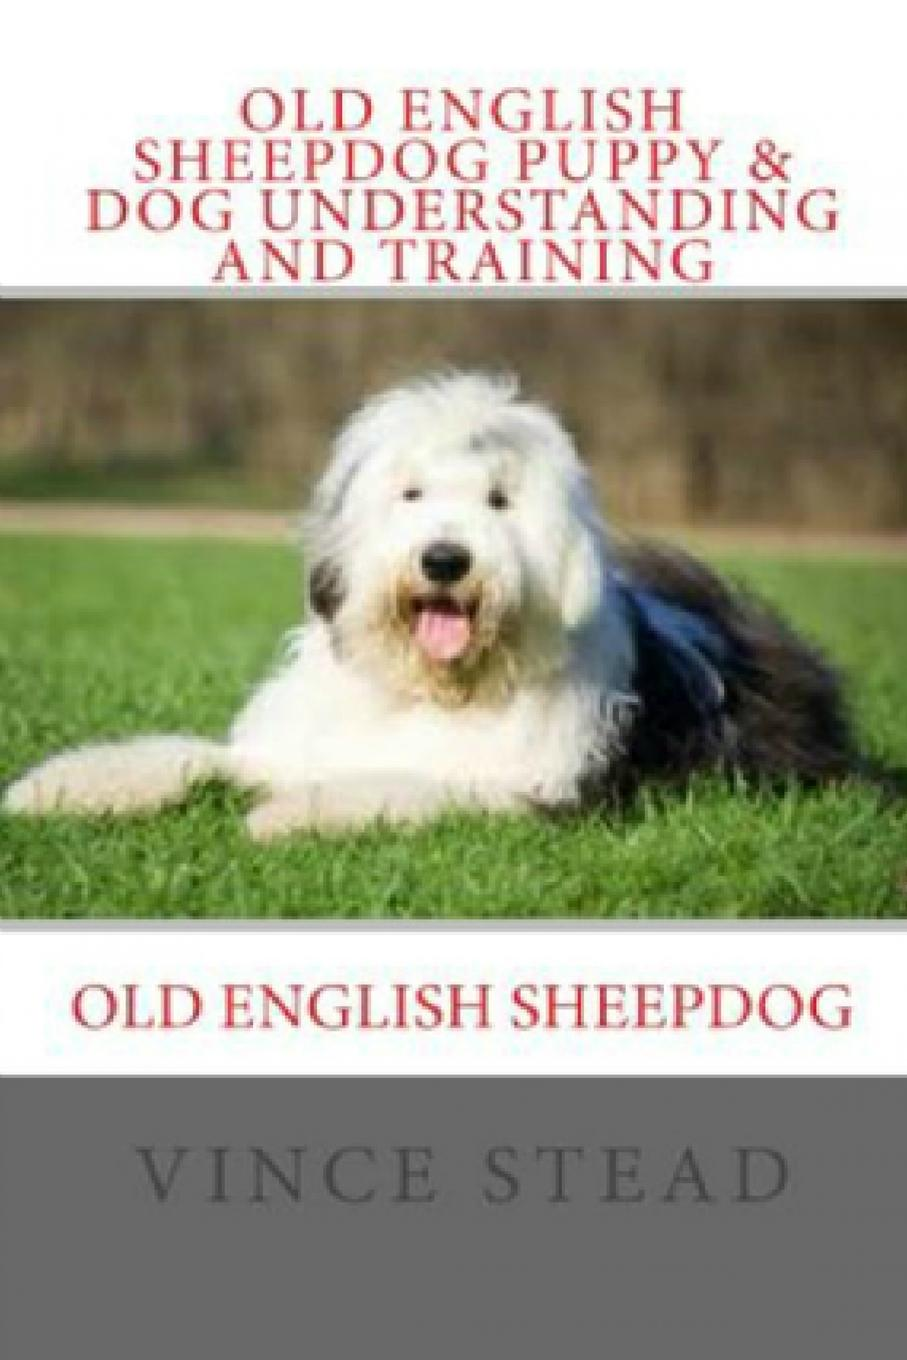 Vince Stead Old English Sheepdog Puppy . Dog Understanding and Training mitchell bruce a guide to old english